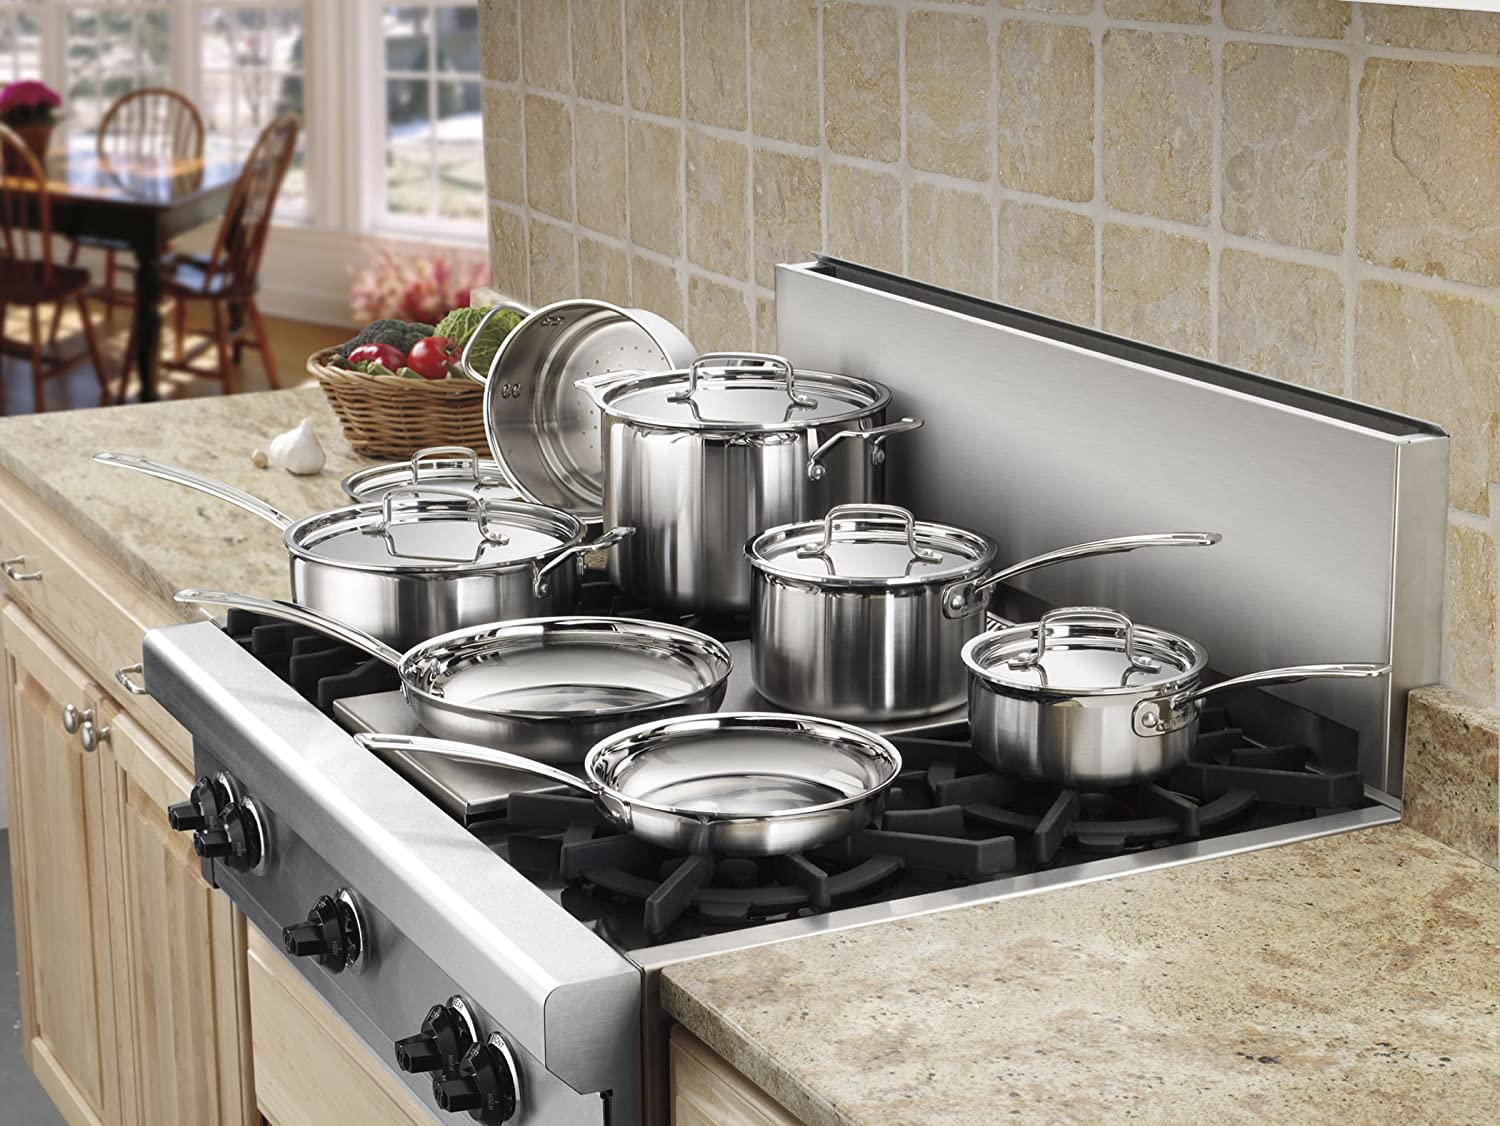 What is the best cookware?